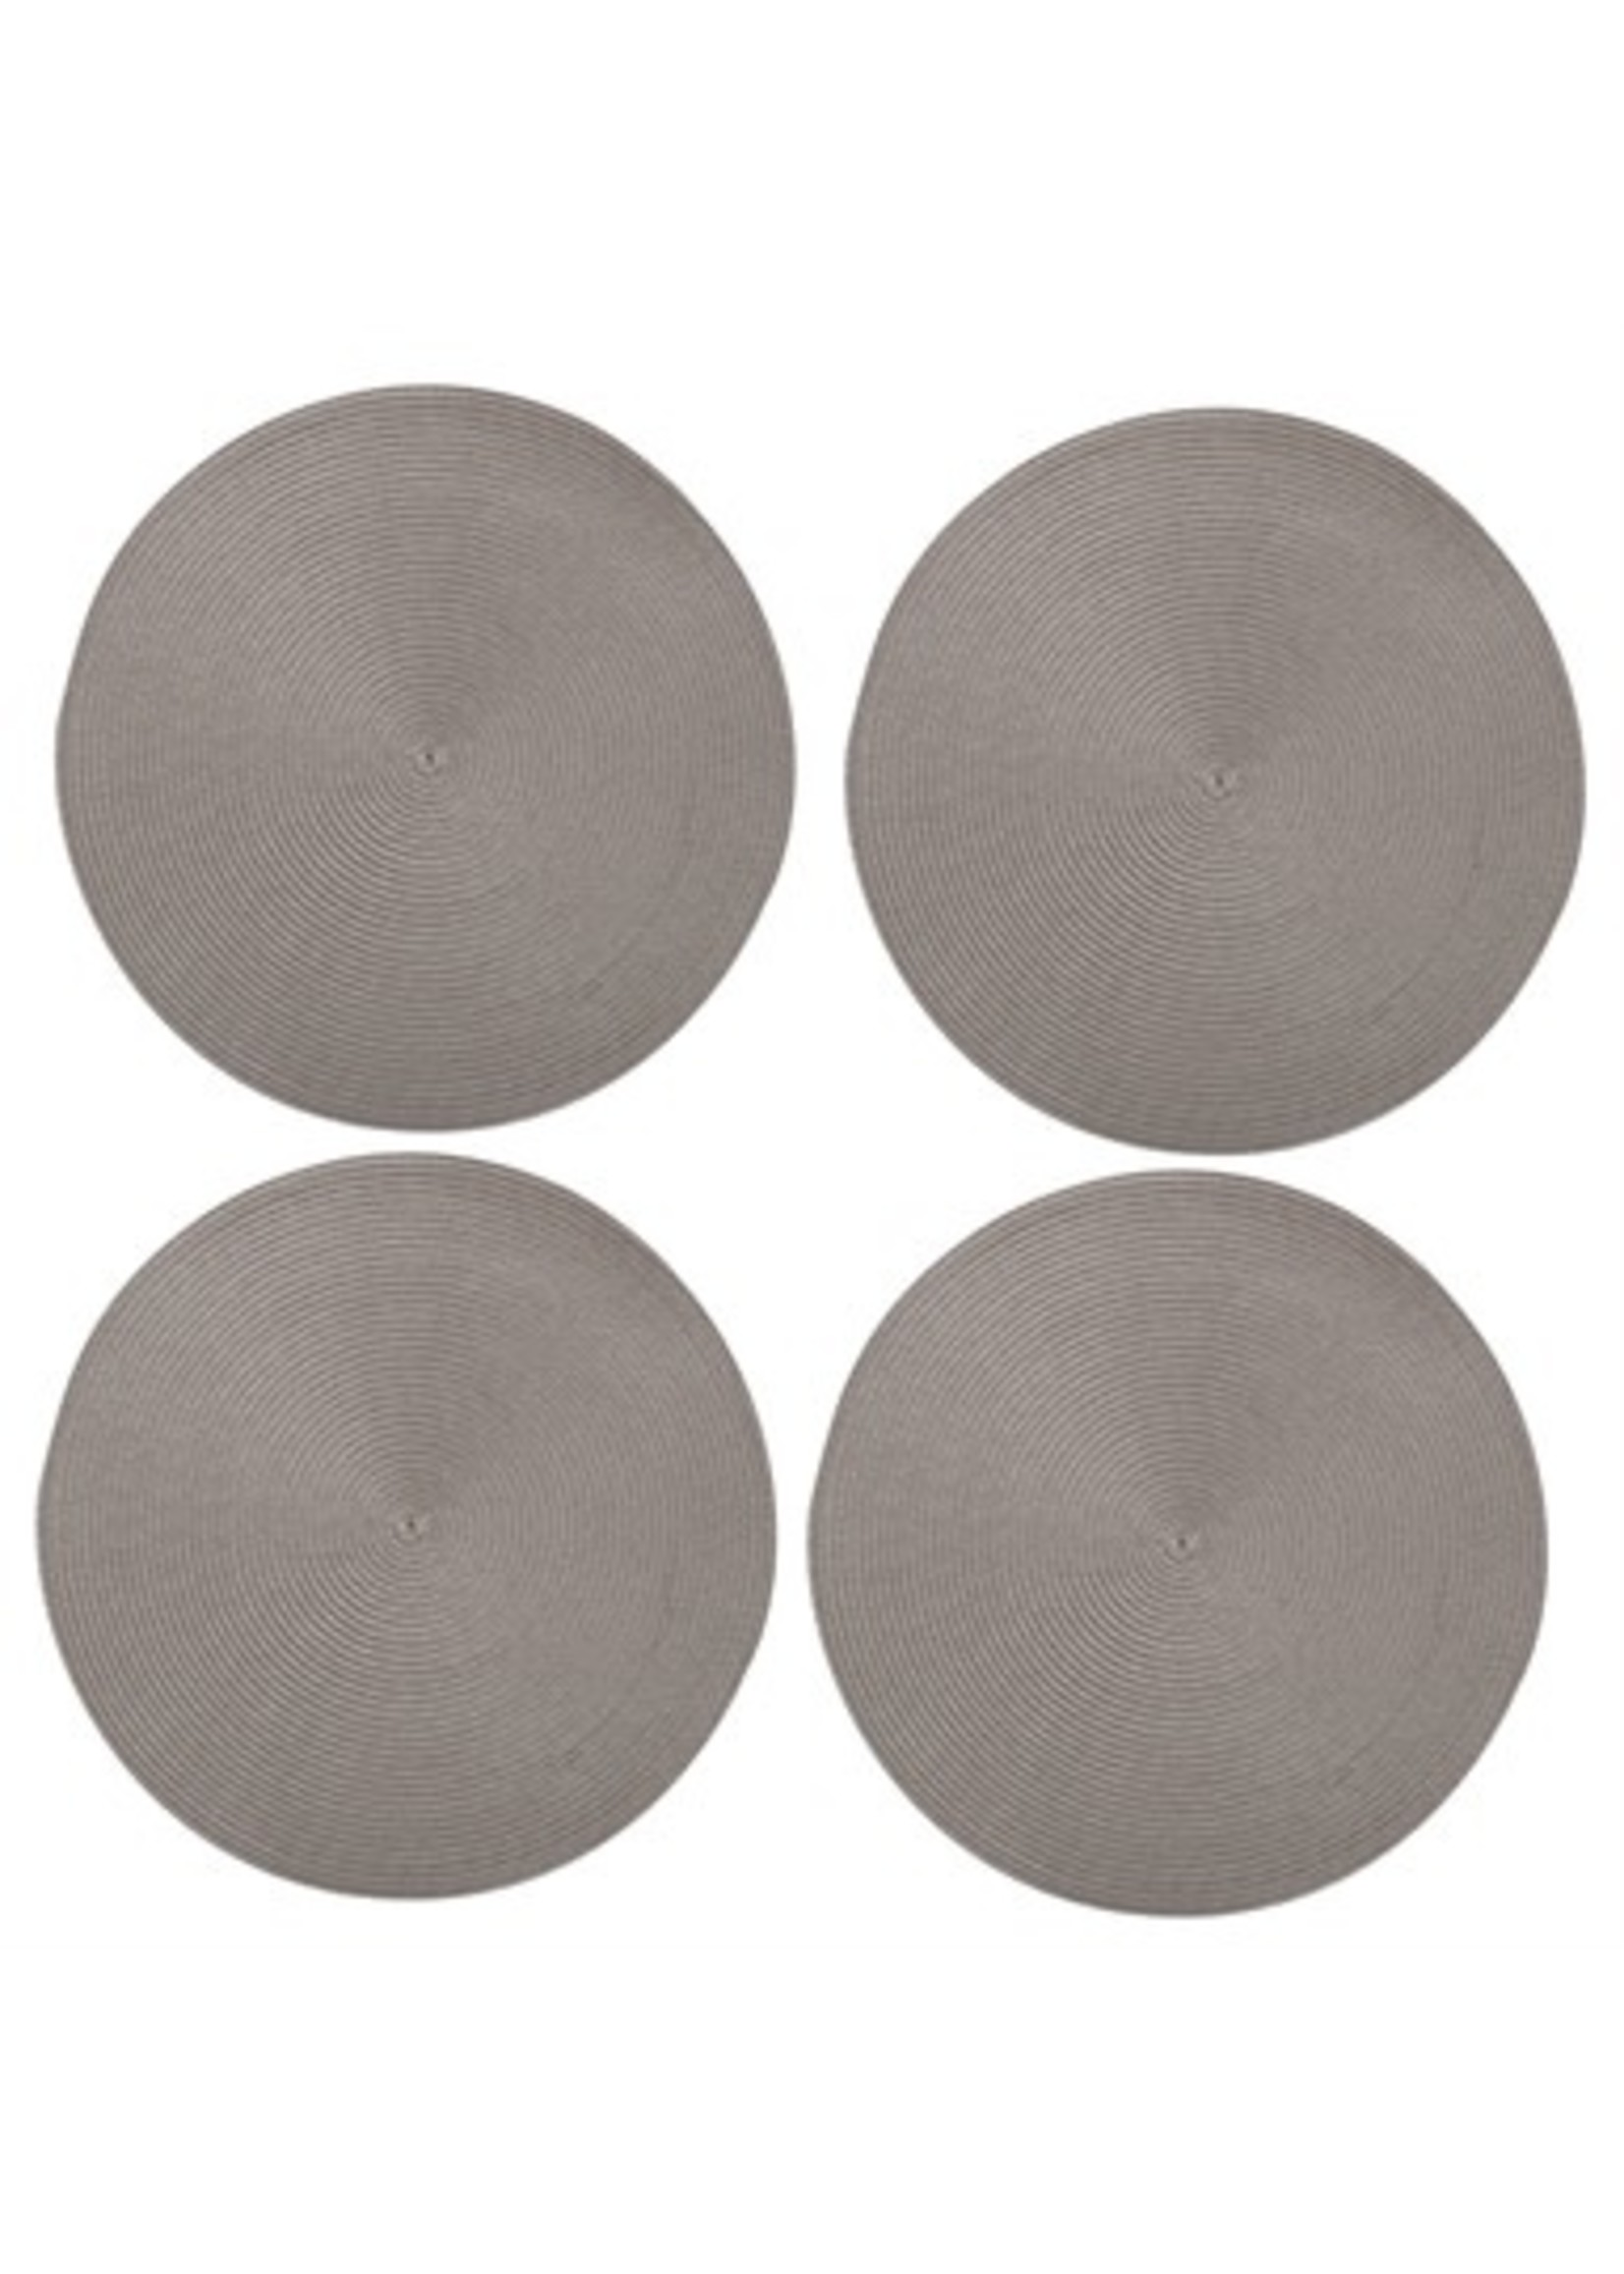 Tag Round Woven Placemats - Gray